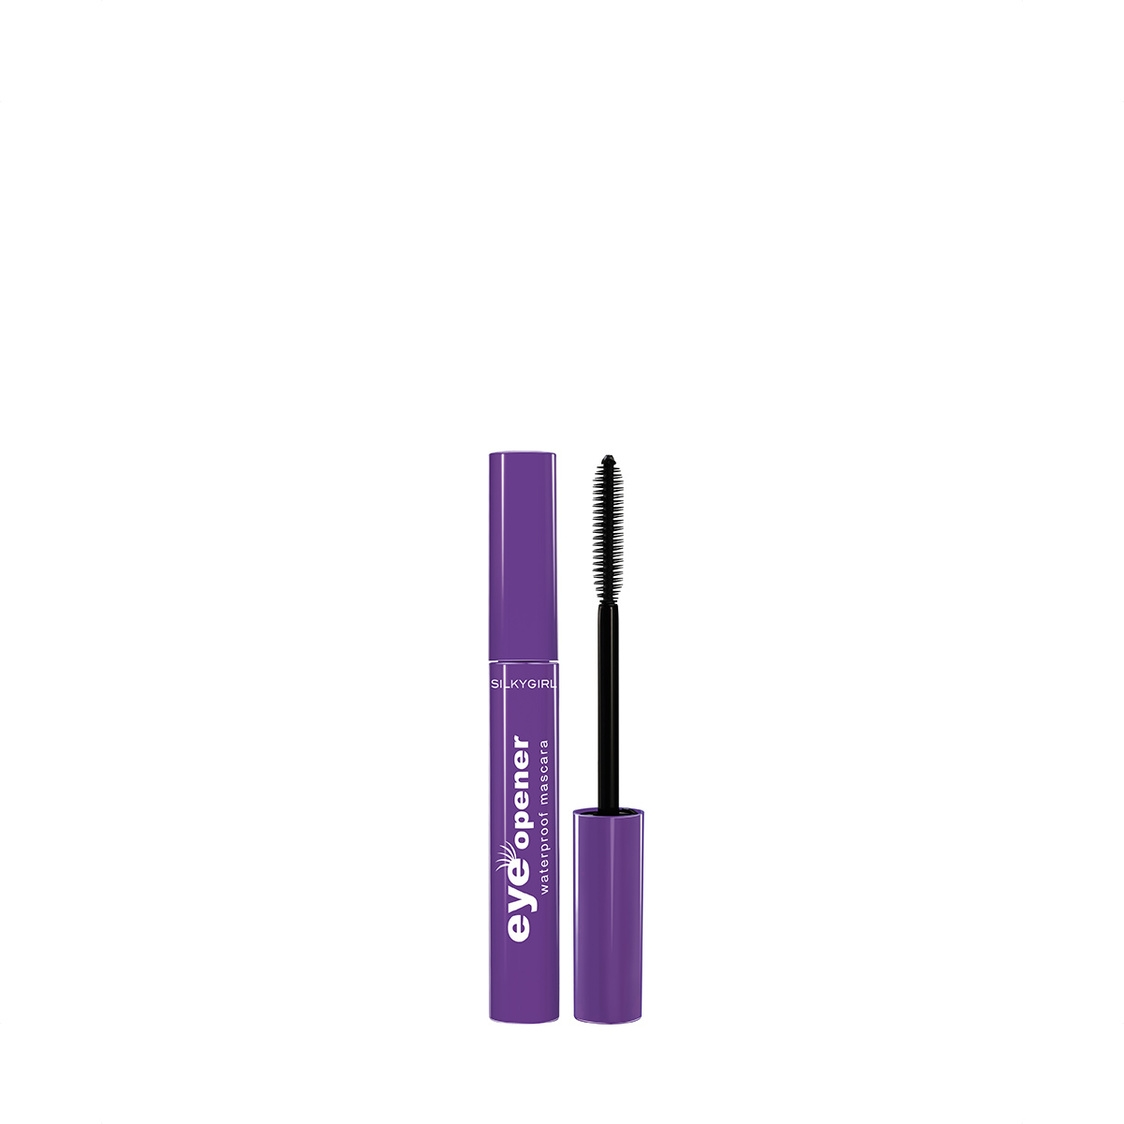 Eye Opener Waterproof Mascara 03 Violet